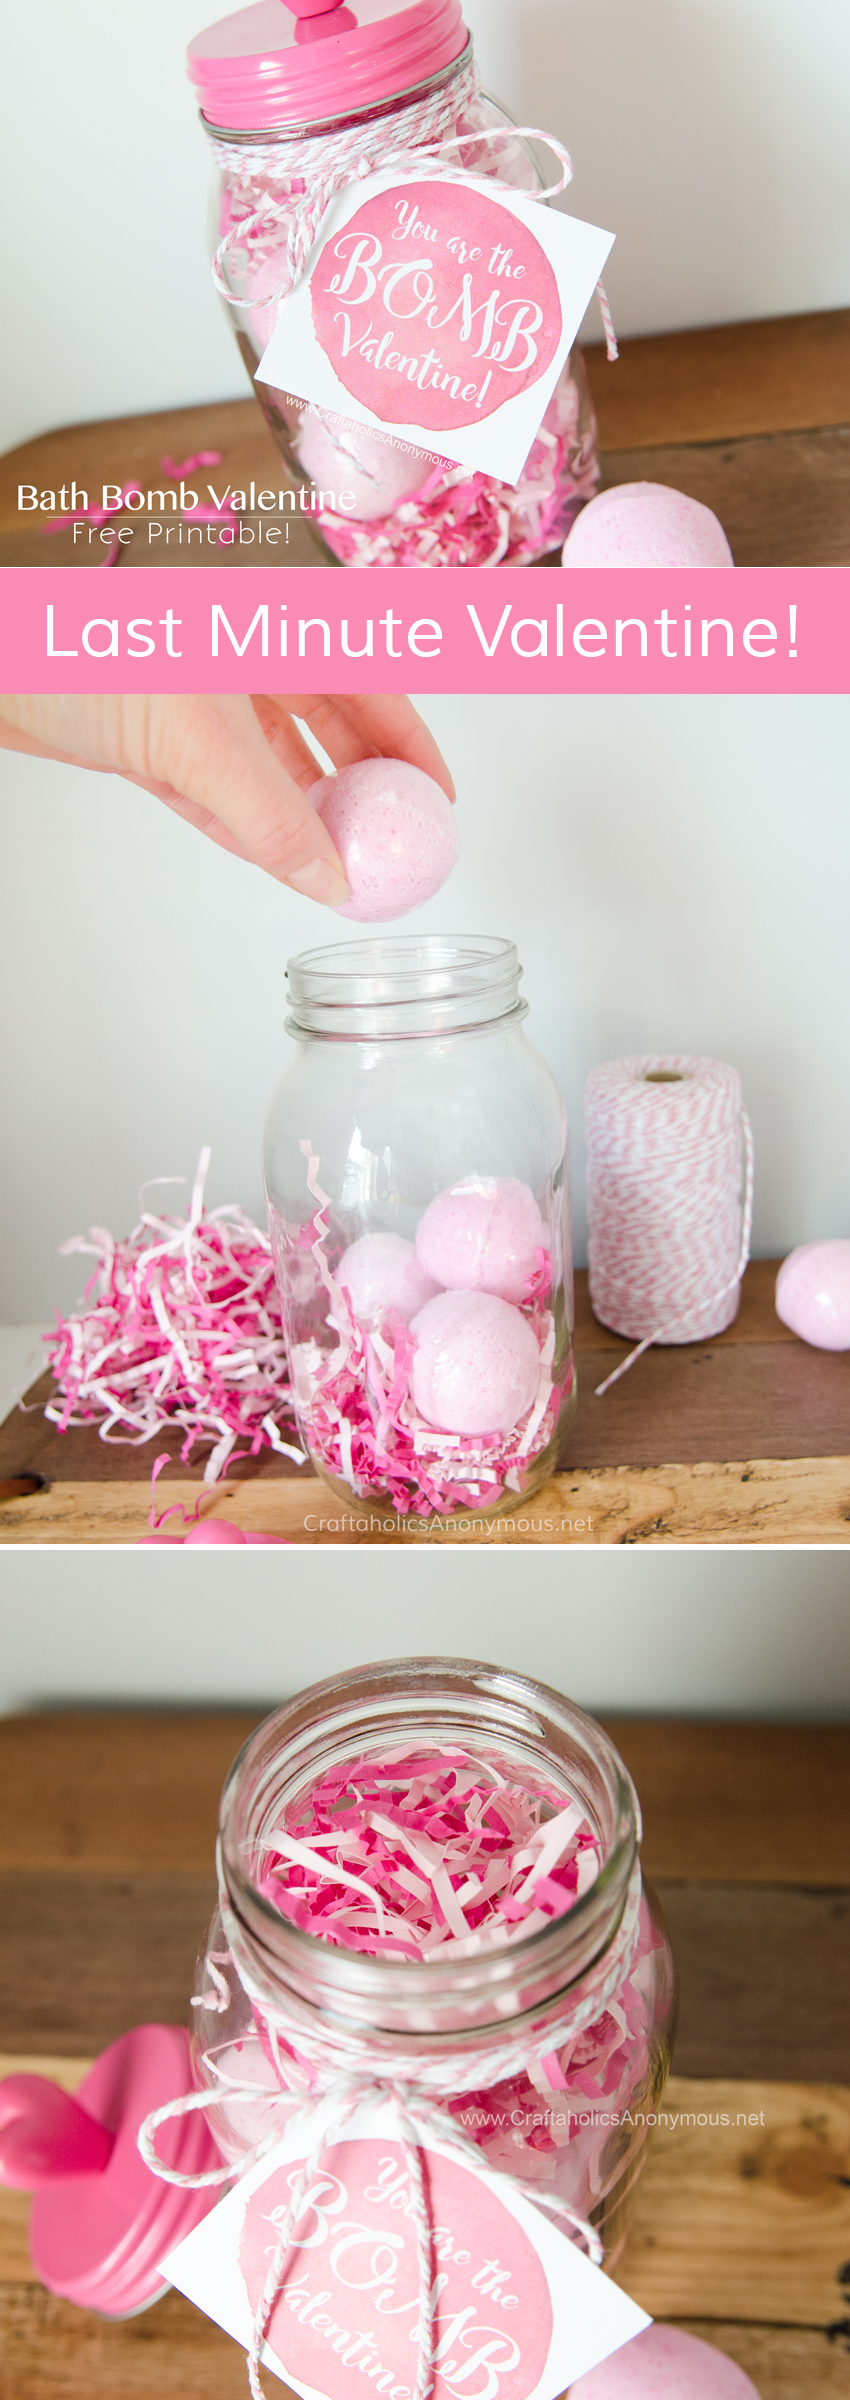 Valentine Bath Bomb in a Mason Jar gift idea with FREE printable tag! www.CraftaholicsAnonymous.net